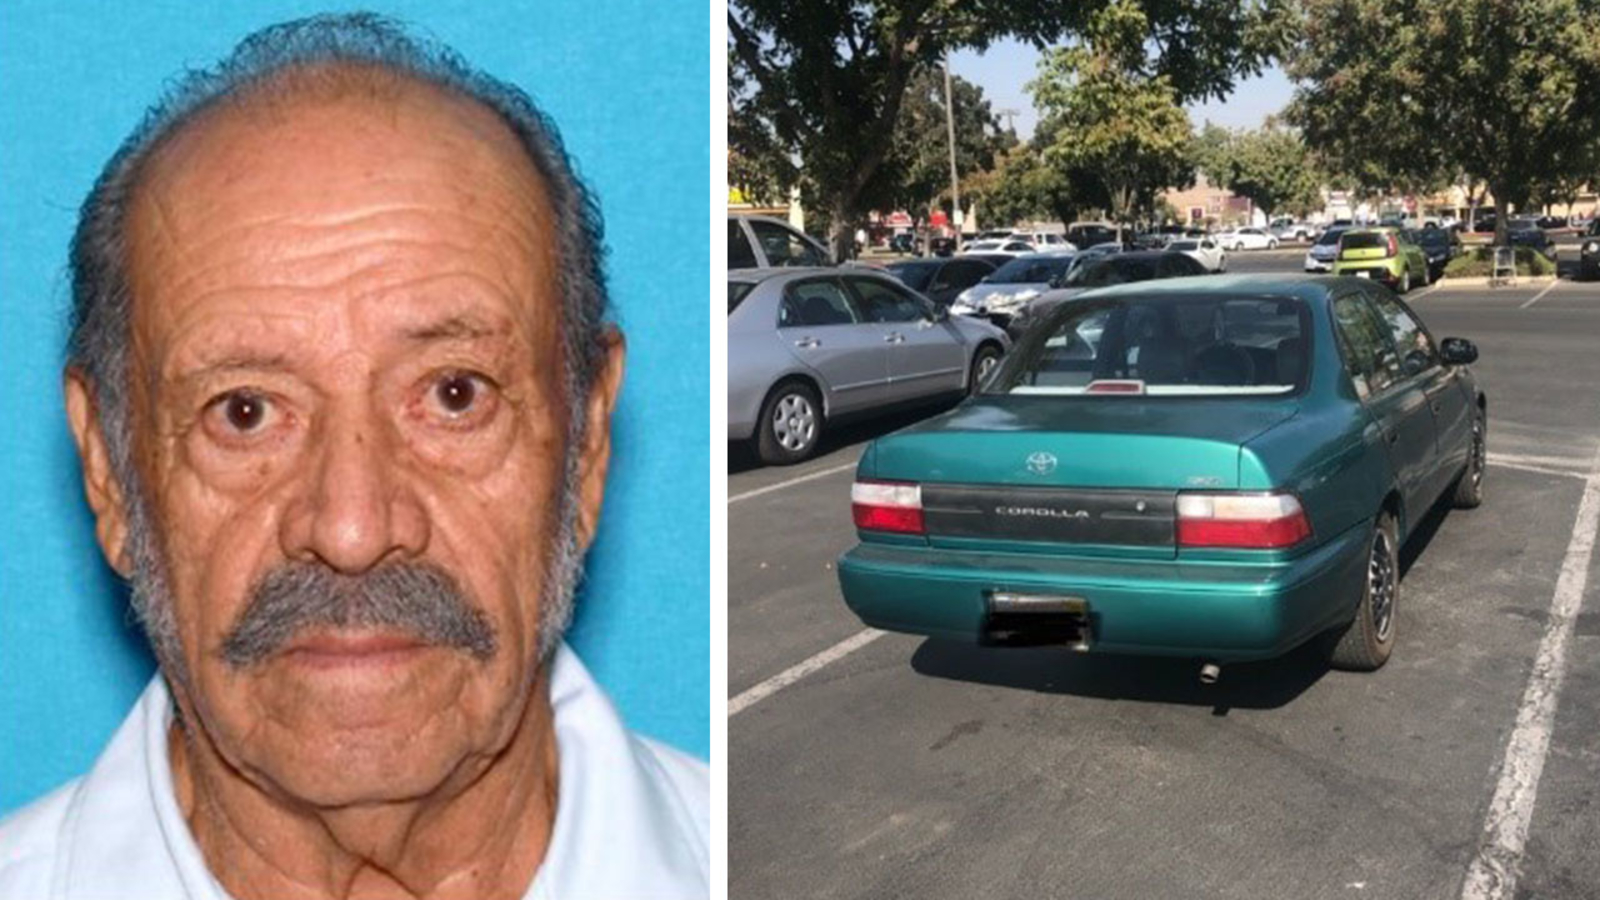 Missing Porterville man found safe in Patterson, police say